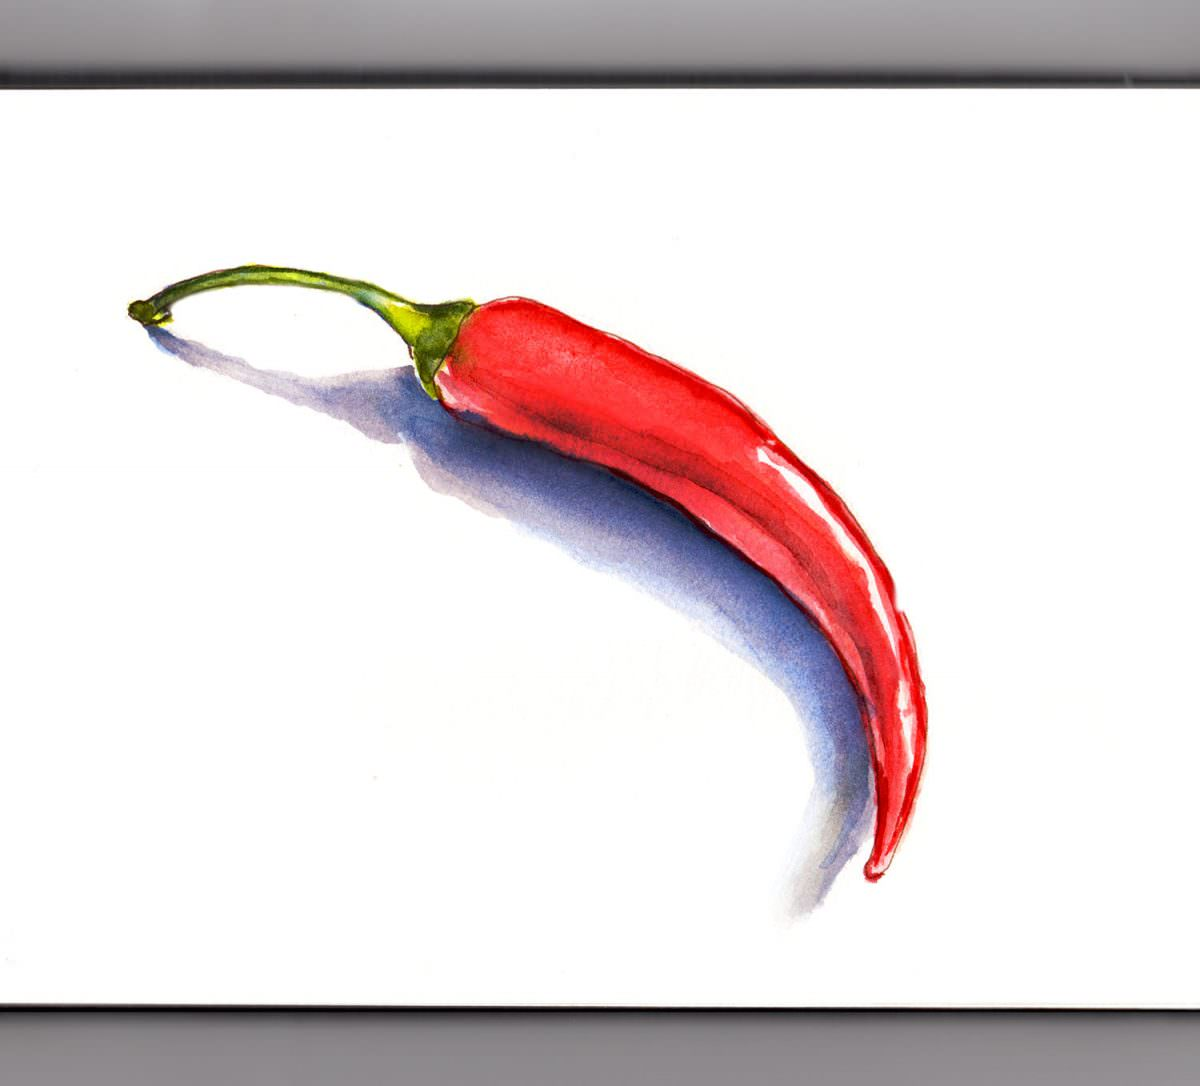 #WorldWatercolorGroup - Day 6 - Chili Peppers On A Chilly Day - Doodlewash